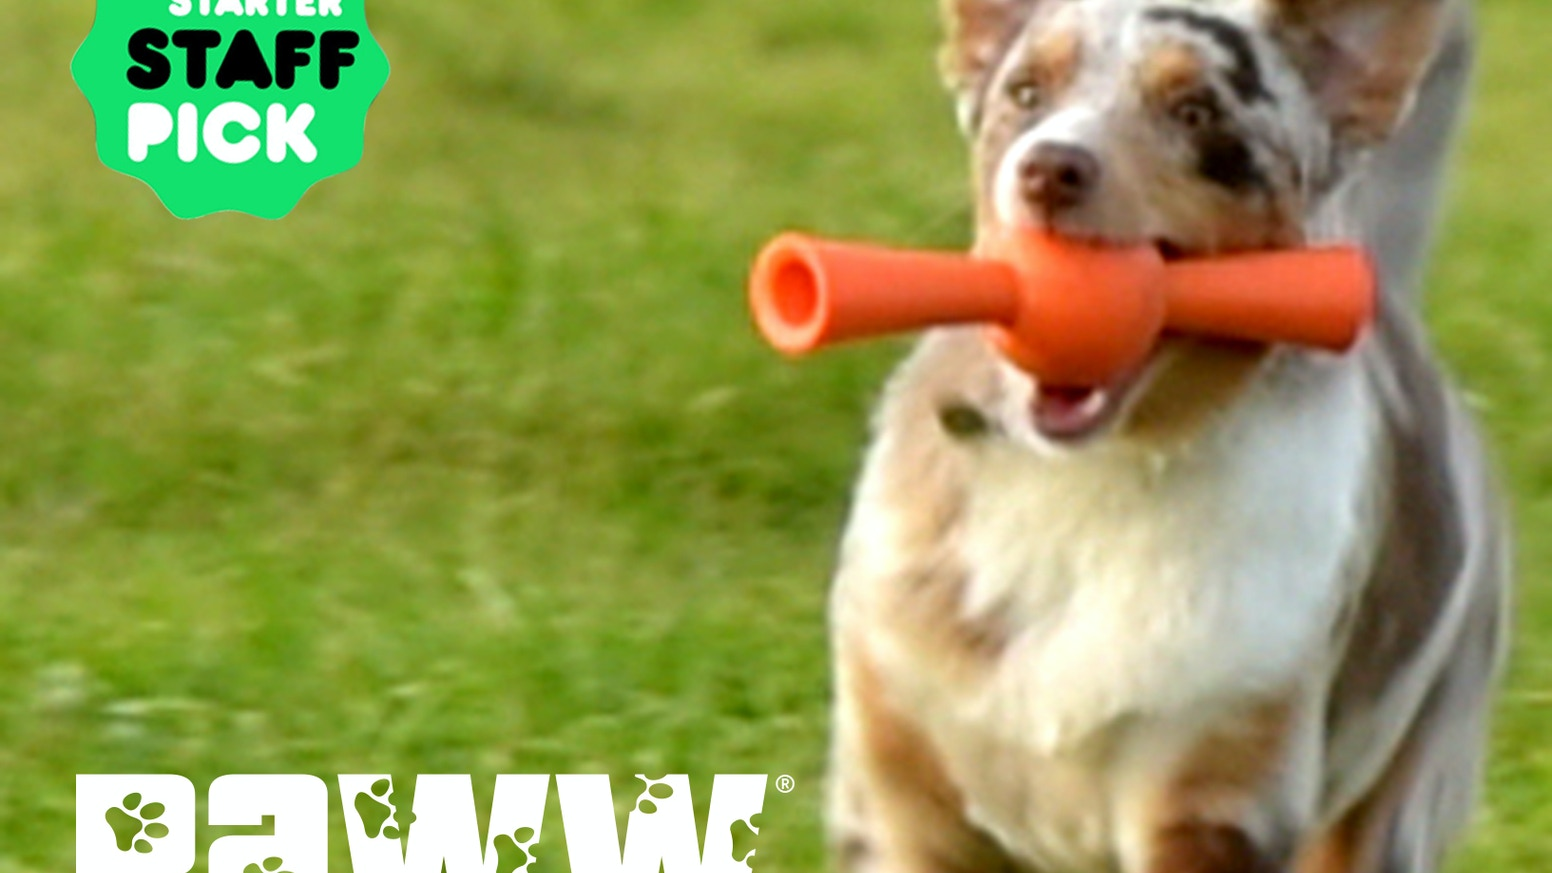 Crazily durable, chuckable, and with both fetch and treat-dispensing features, these new balls will keep your dog engaged and happy.